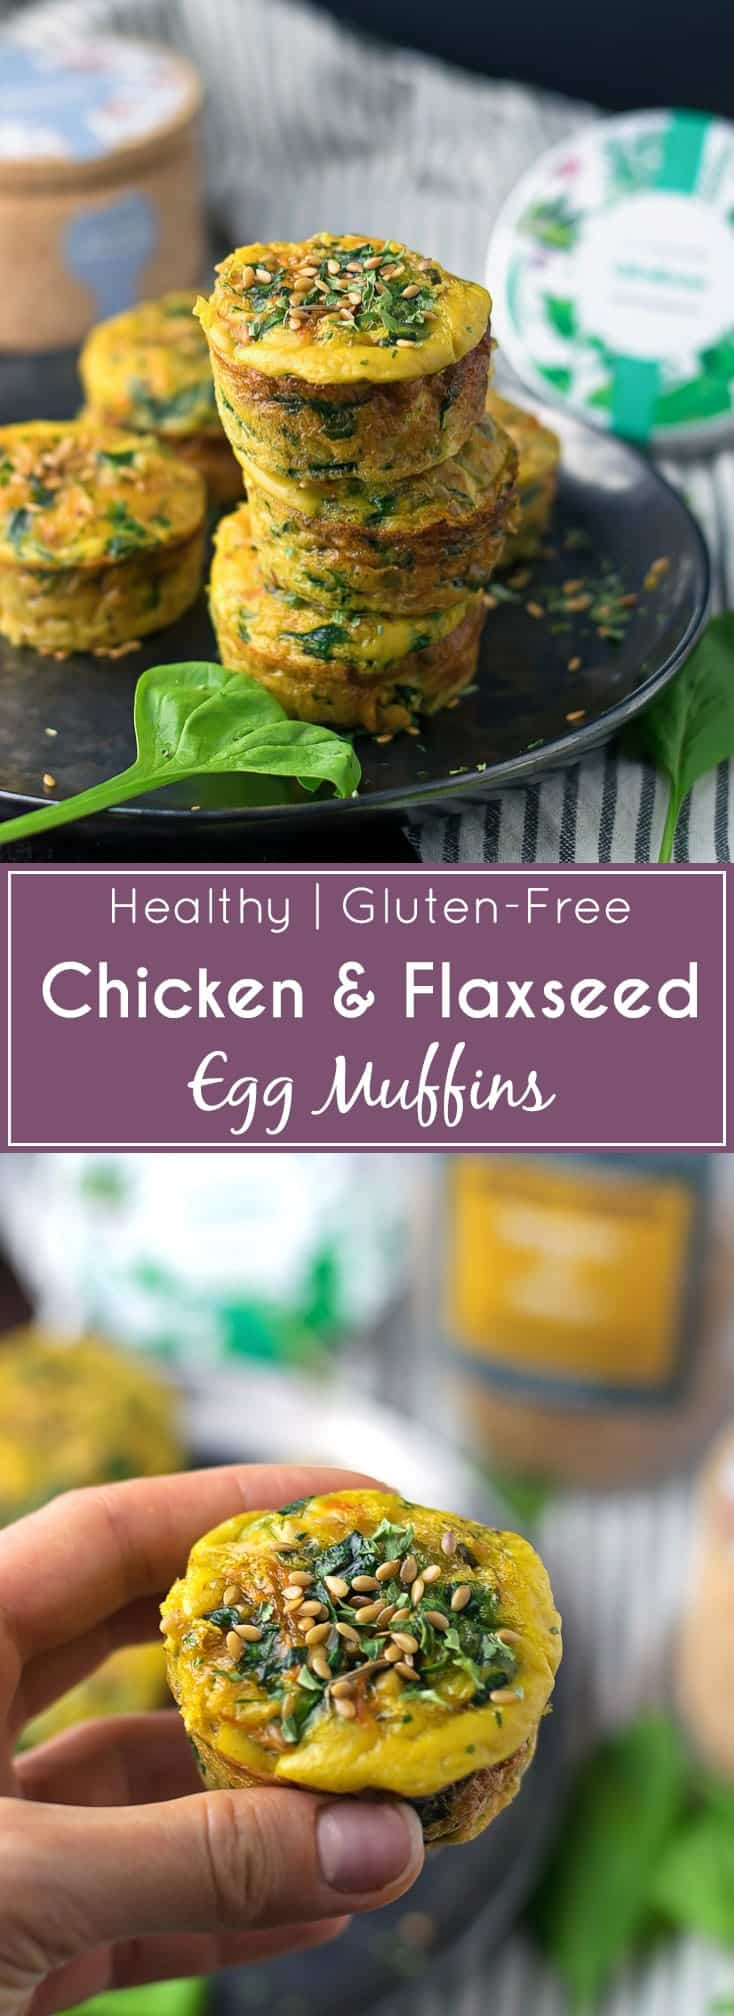 Chicken Flaxseed Egg Muffins